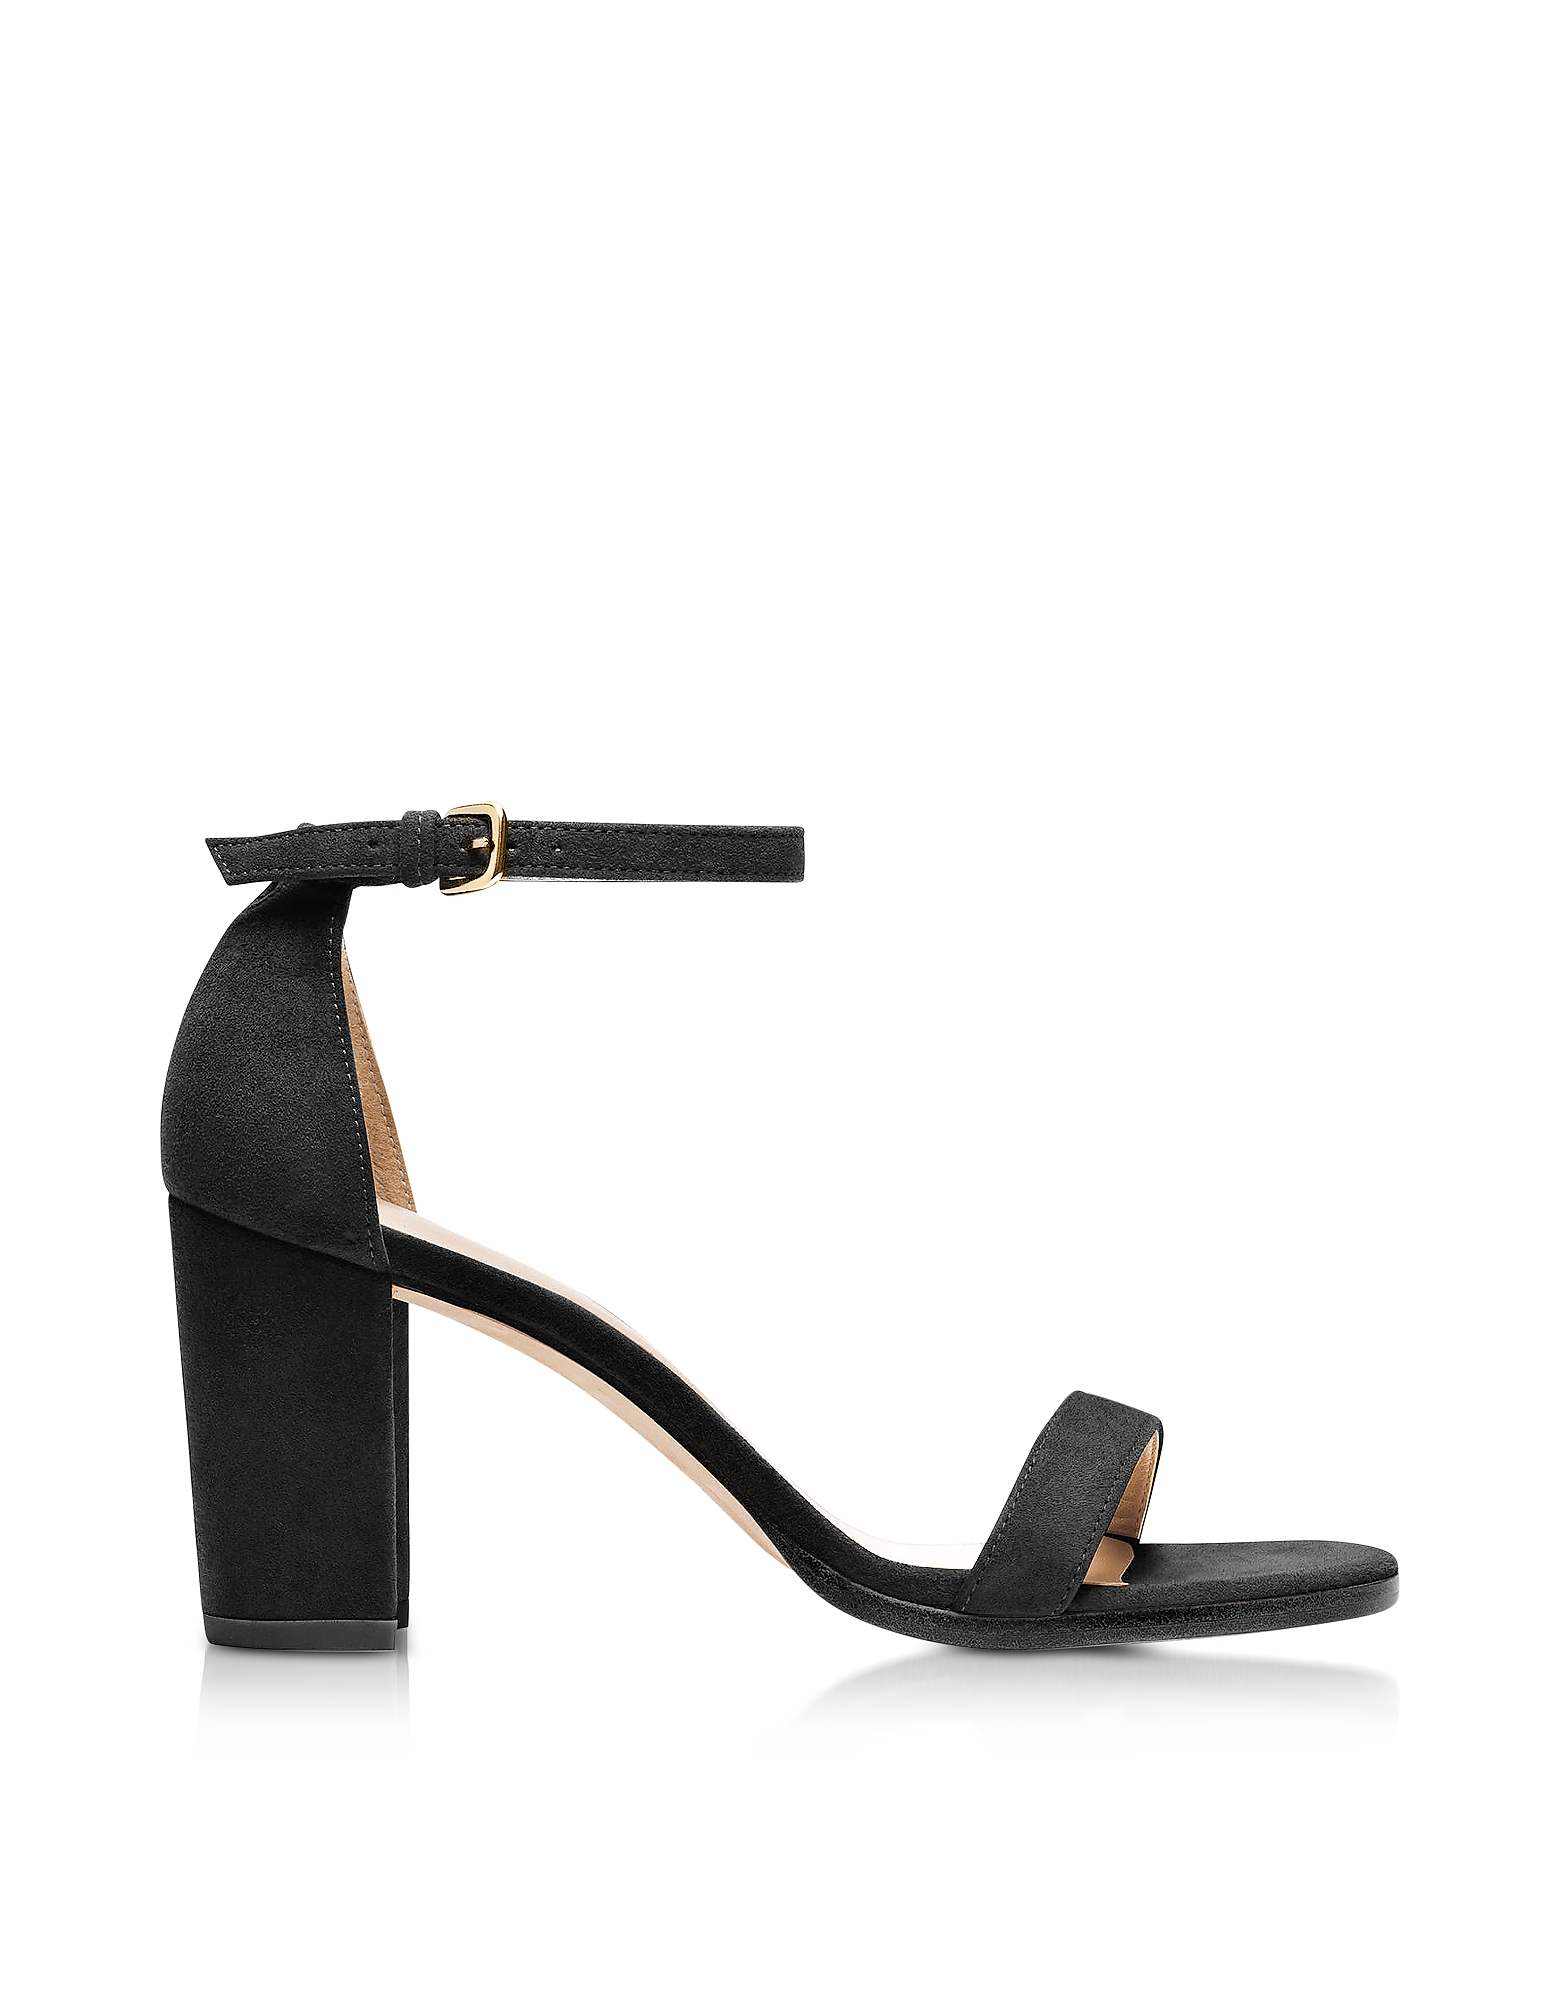 Stuart Weitzman Shoes, Nearlynude Black Suede Heel Sandals